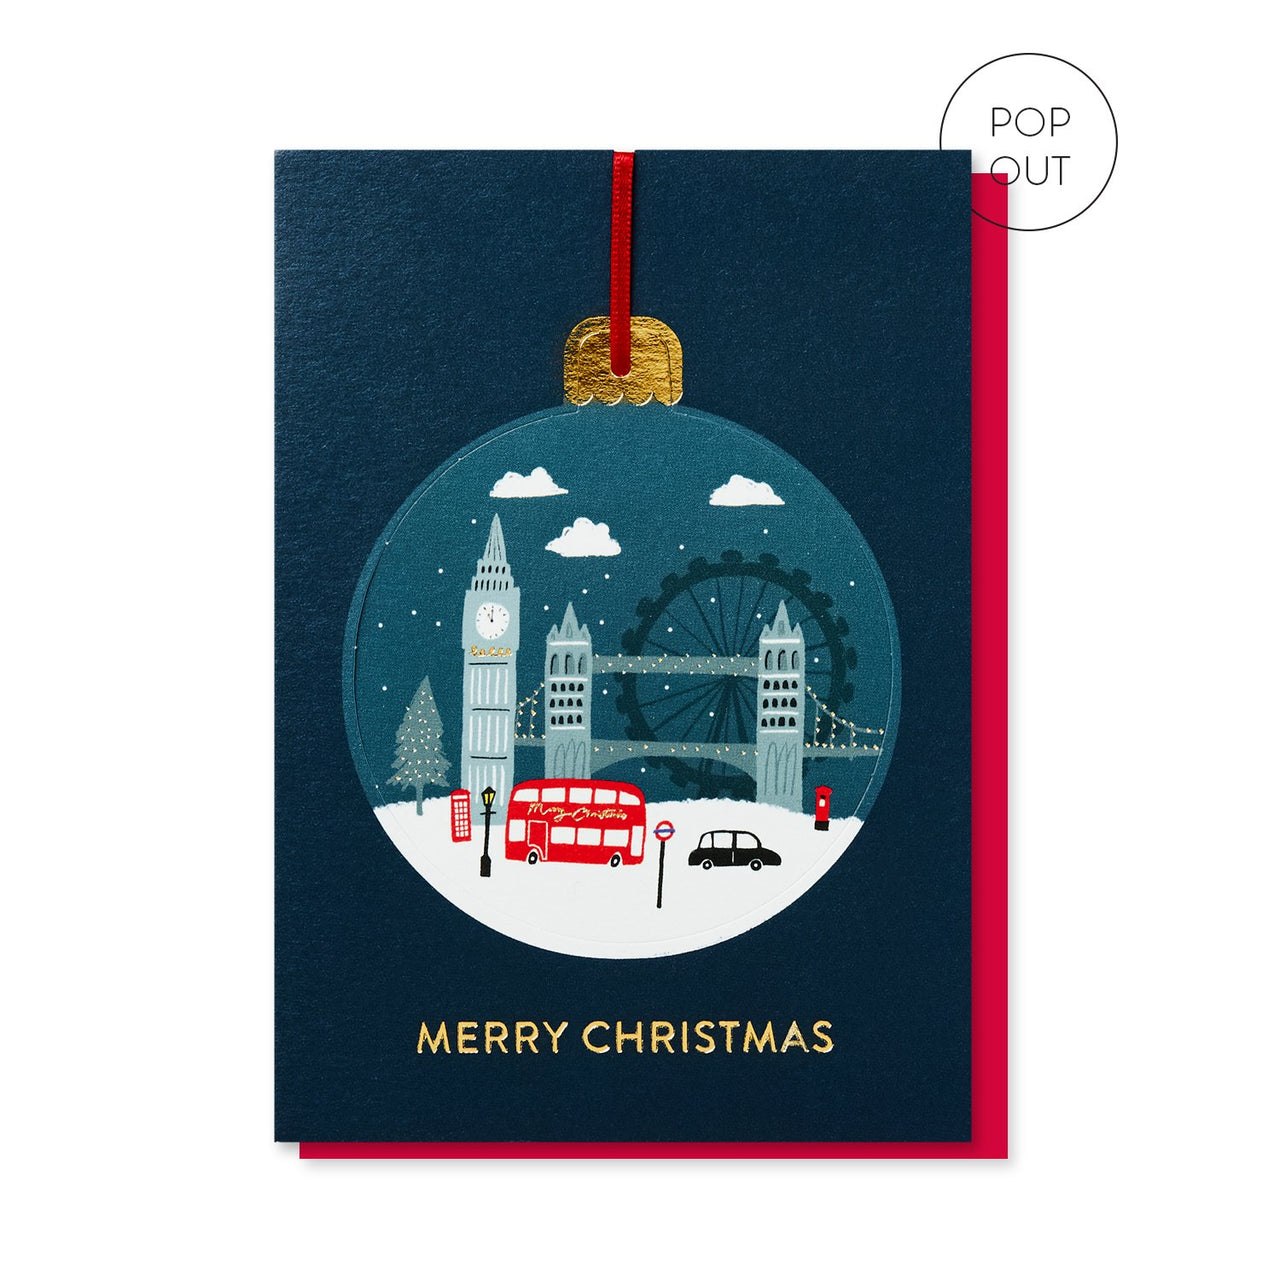 London in the Snow Bauble Christmas card by Stormy Knight.